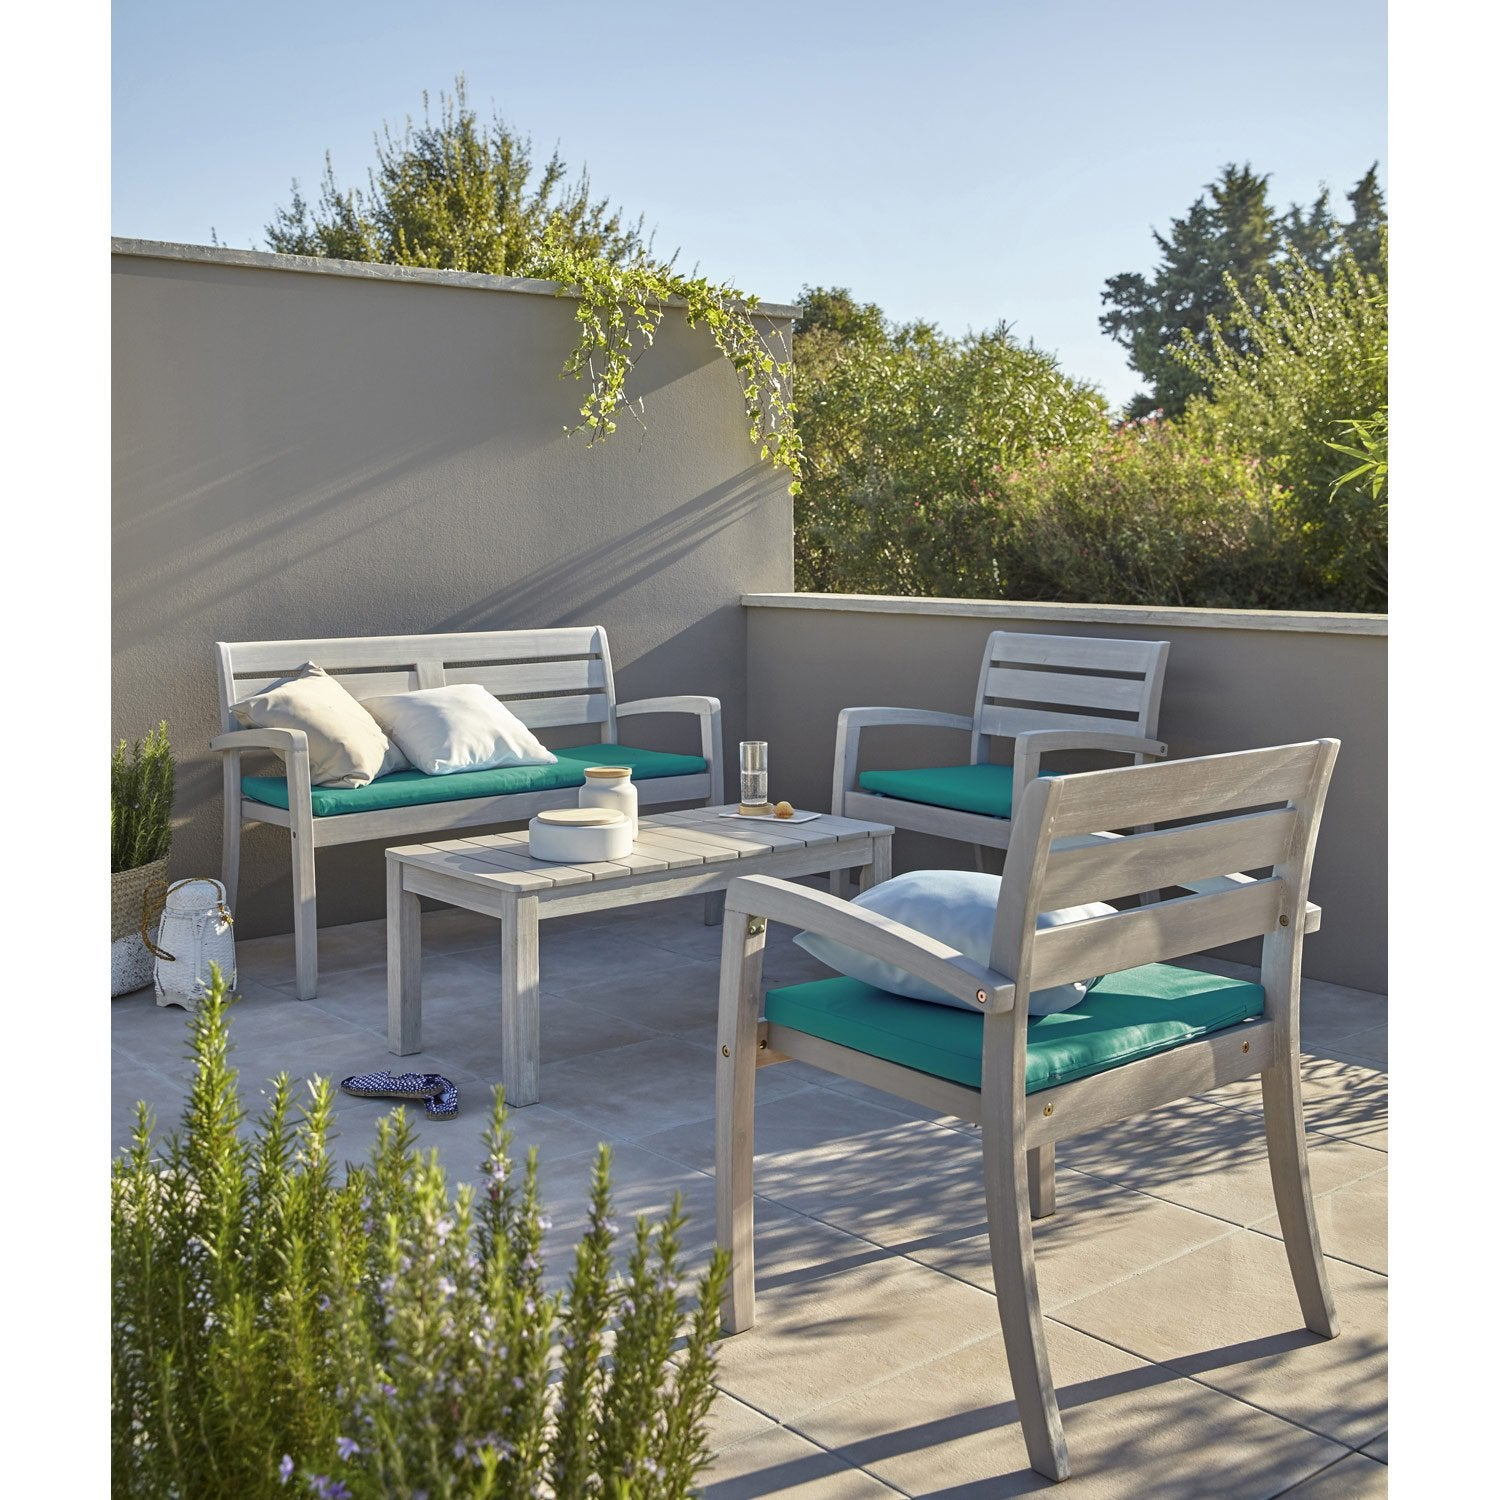 Salon de jardin portofino bois naturel 1 table 2 for Leroy merlin sofas jardin